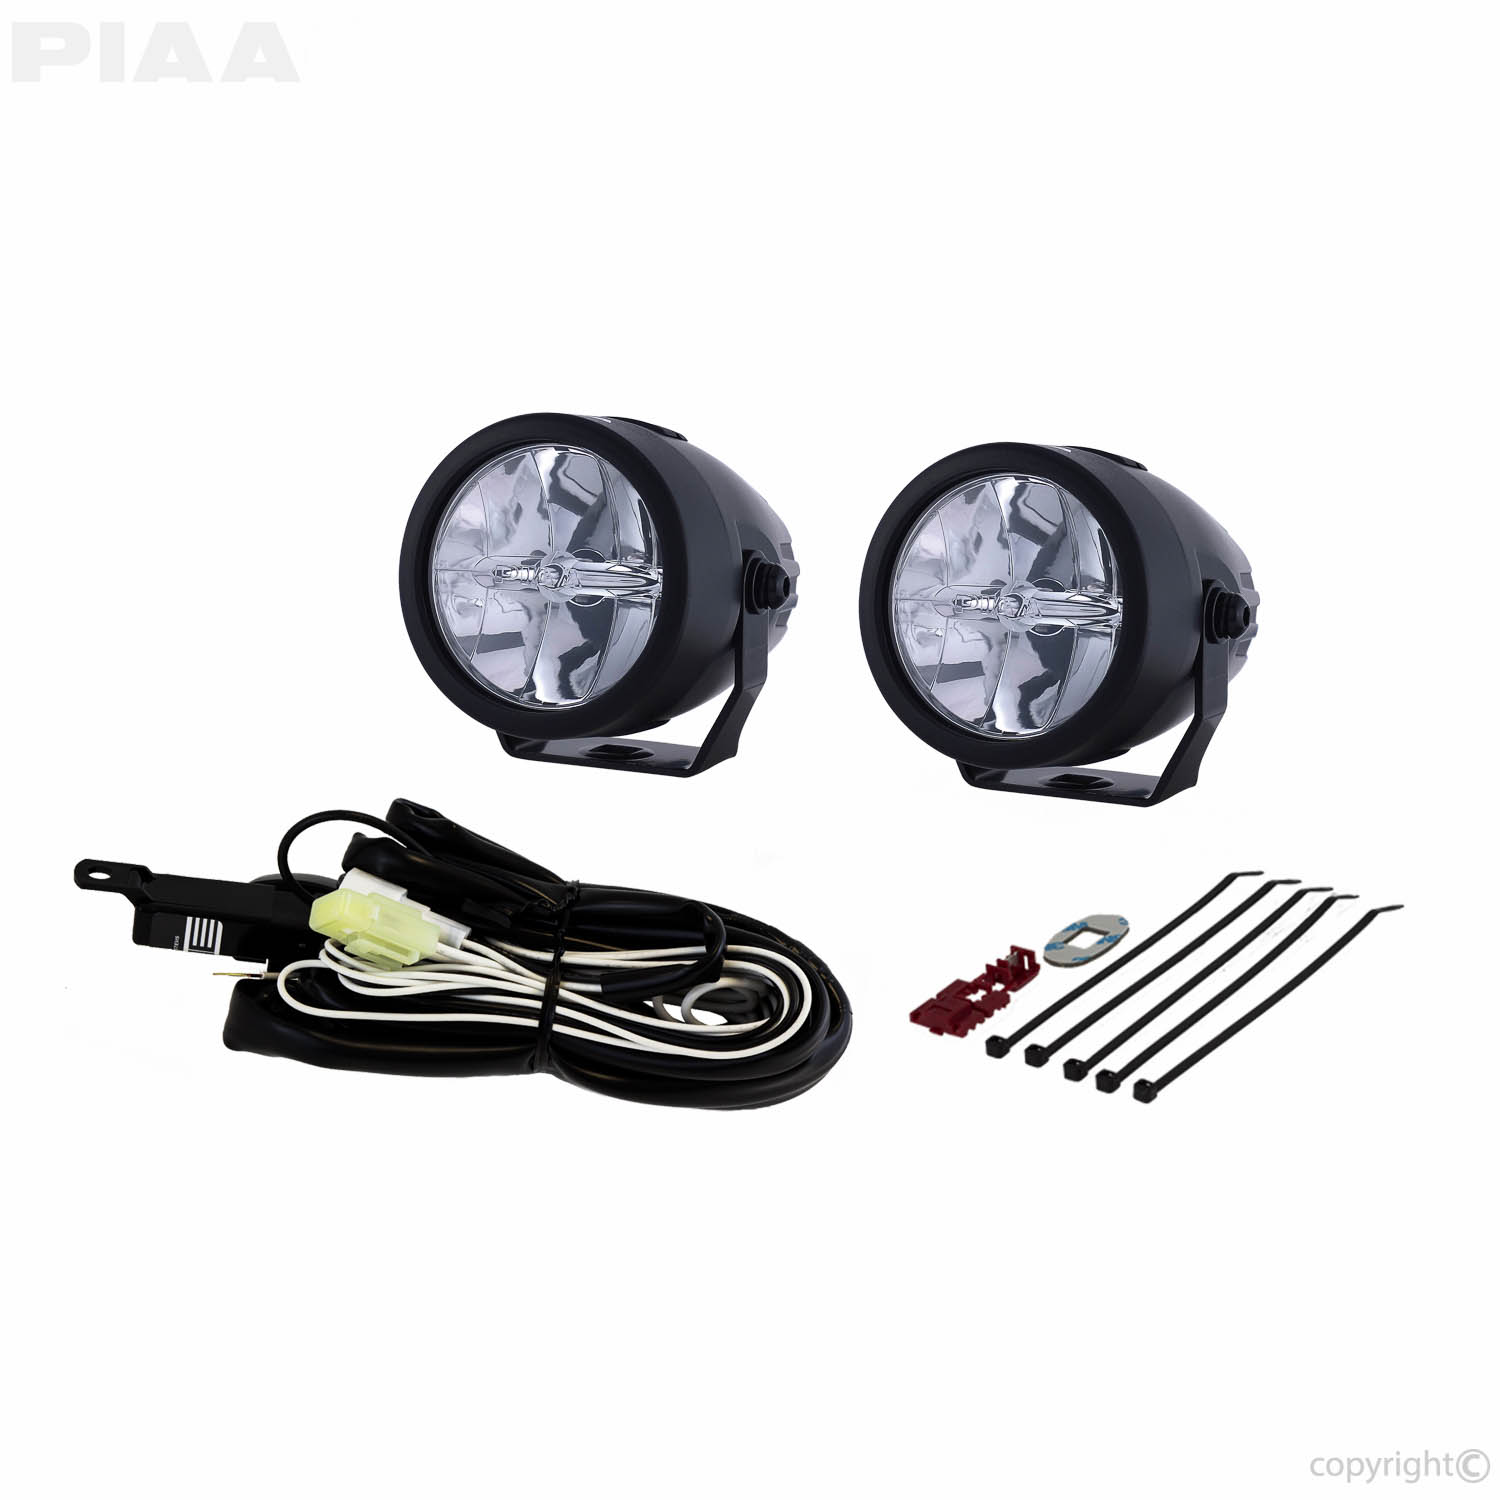 Piaa Motorcycle Lights Wiring Diagram Opinions About Bmw Fog Light 2008 Led For Ducati Motorcycles Rh Com 510 Switch